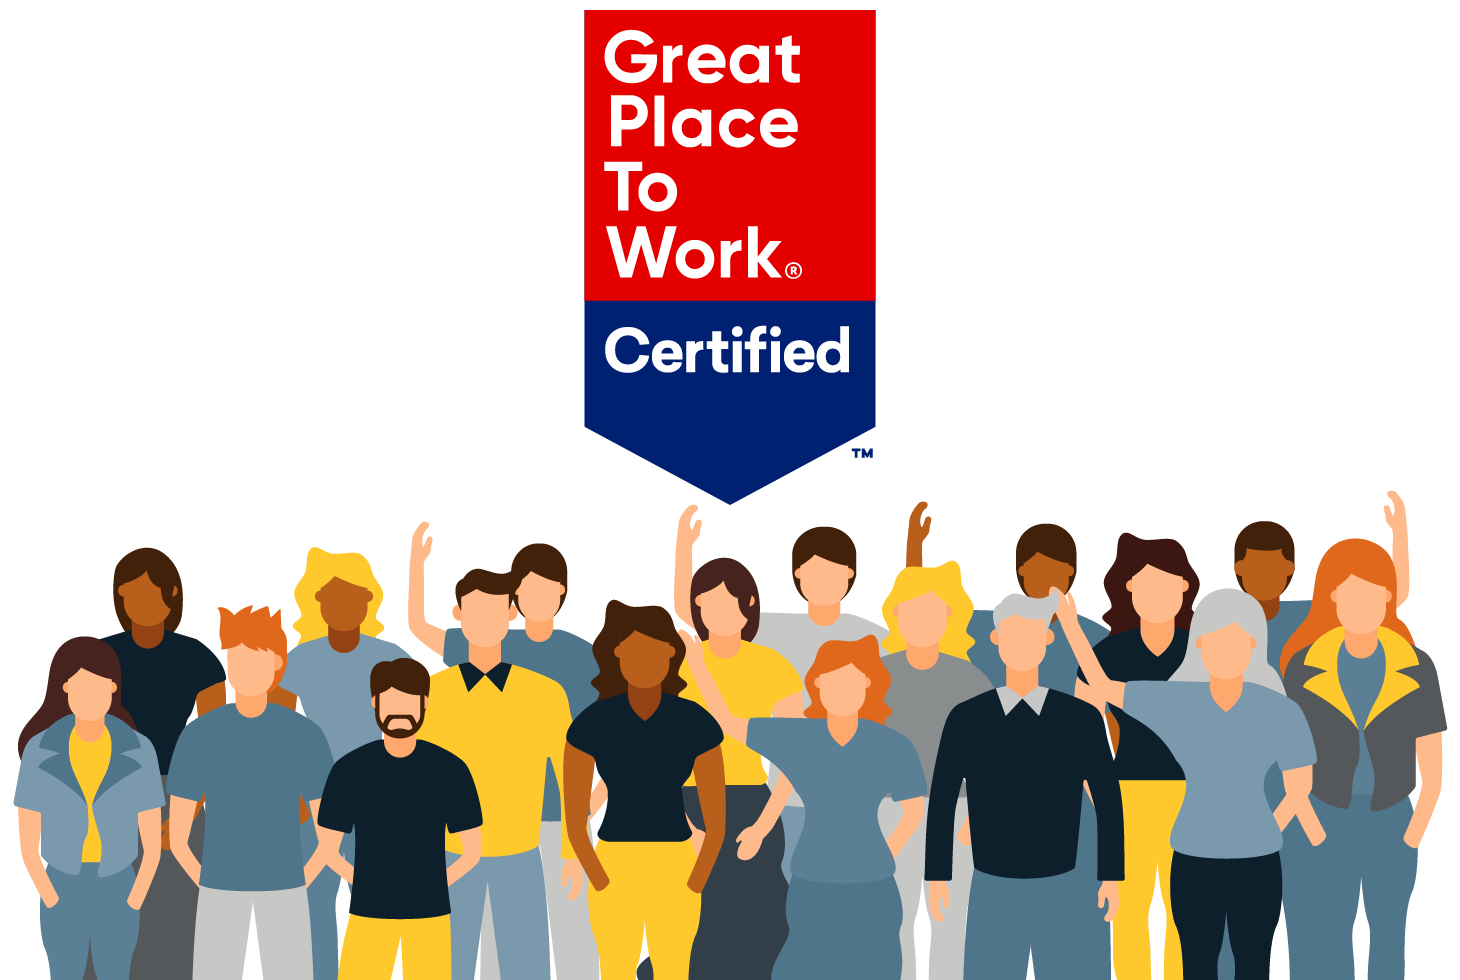 PRMI Certified Great Place to Work